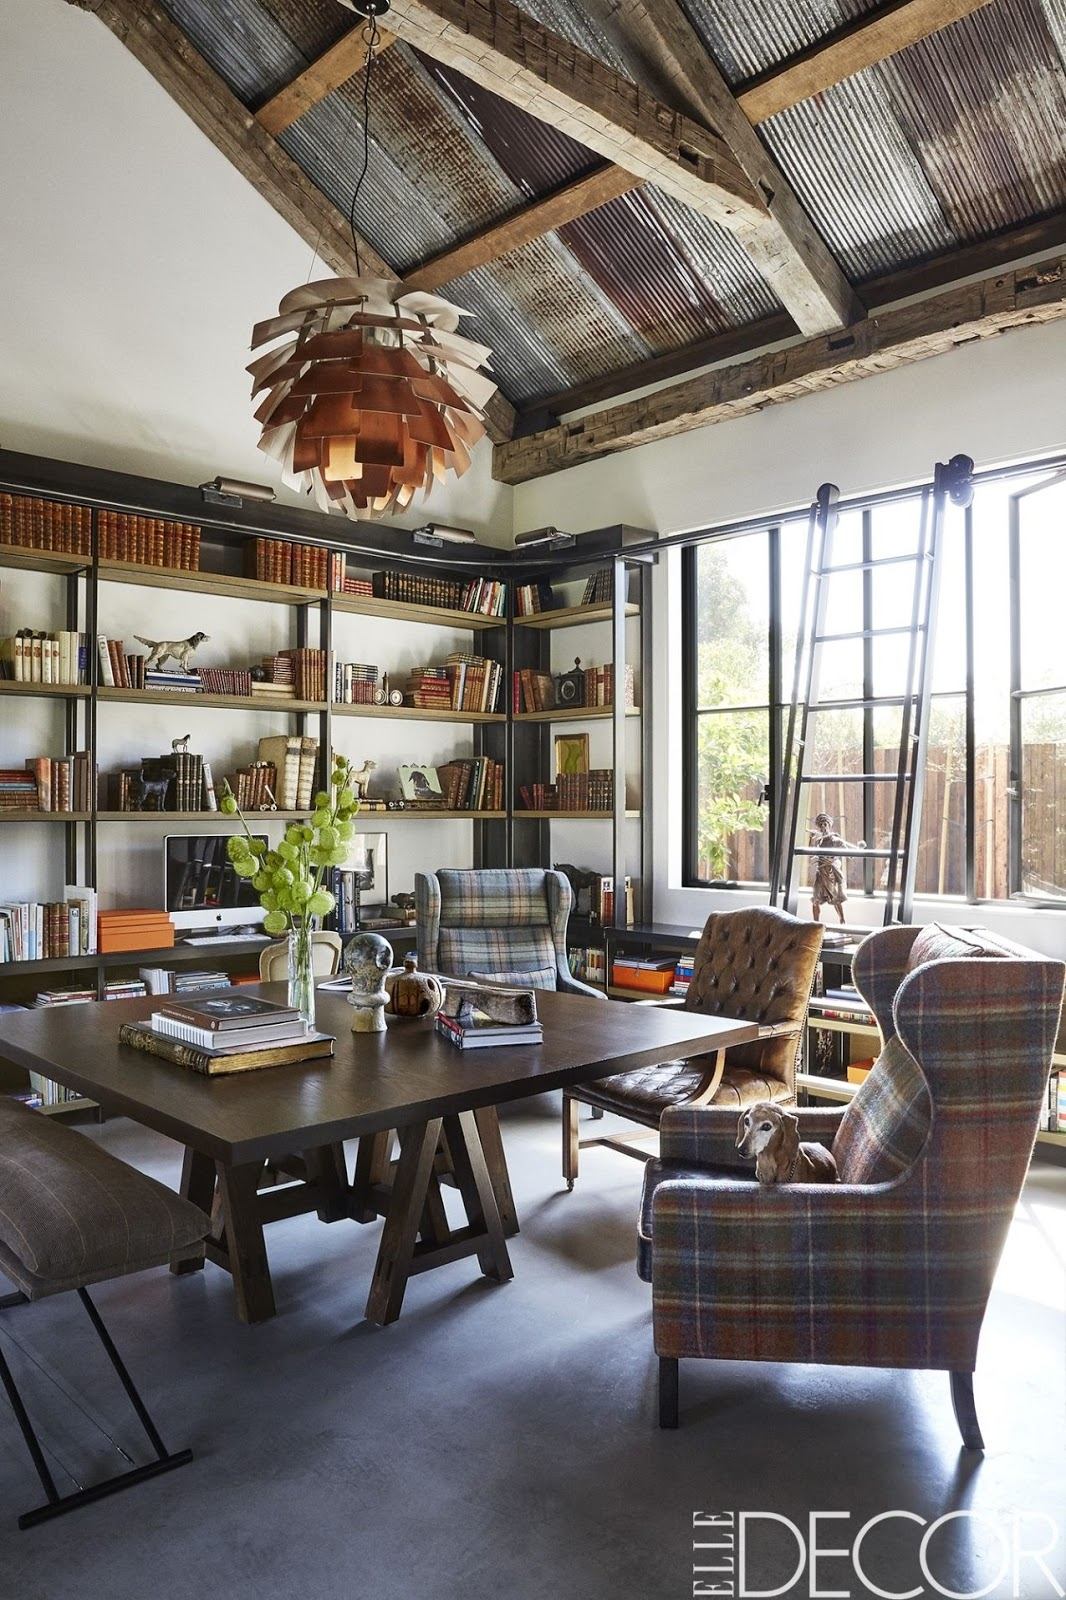 Designer Home Interiors: Loveisspeed.......: HOUSE TOUR: A CONTEMPORARY FARMHOUSE